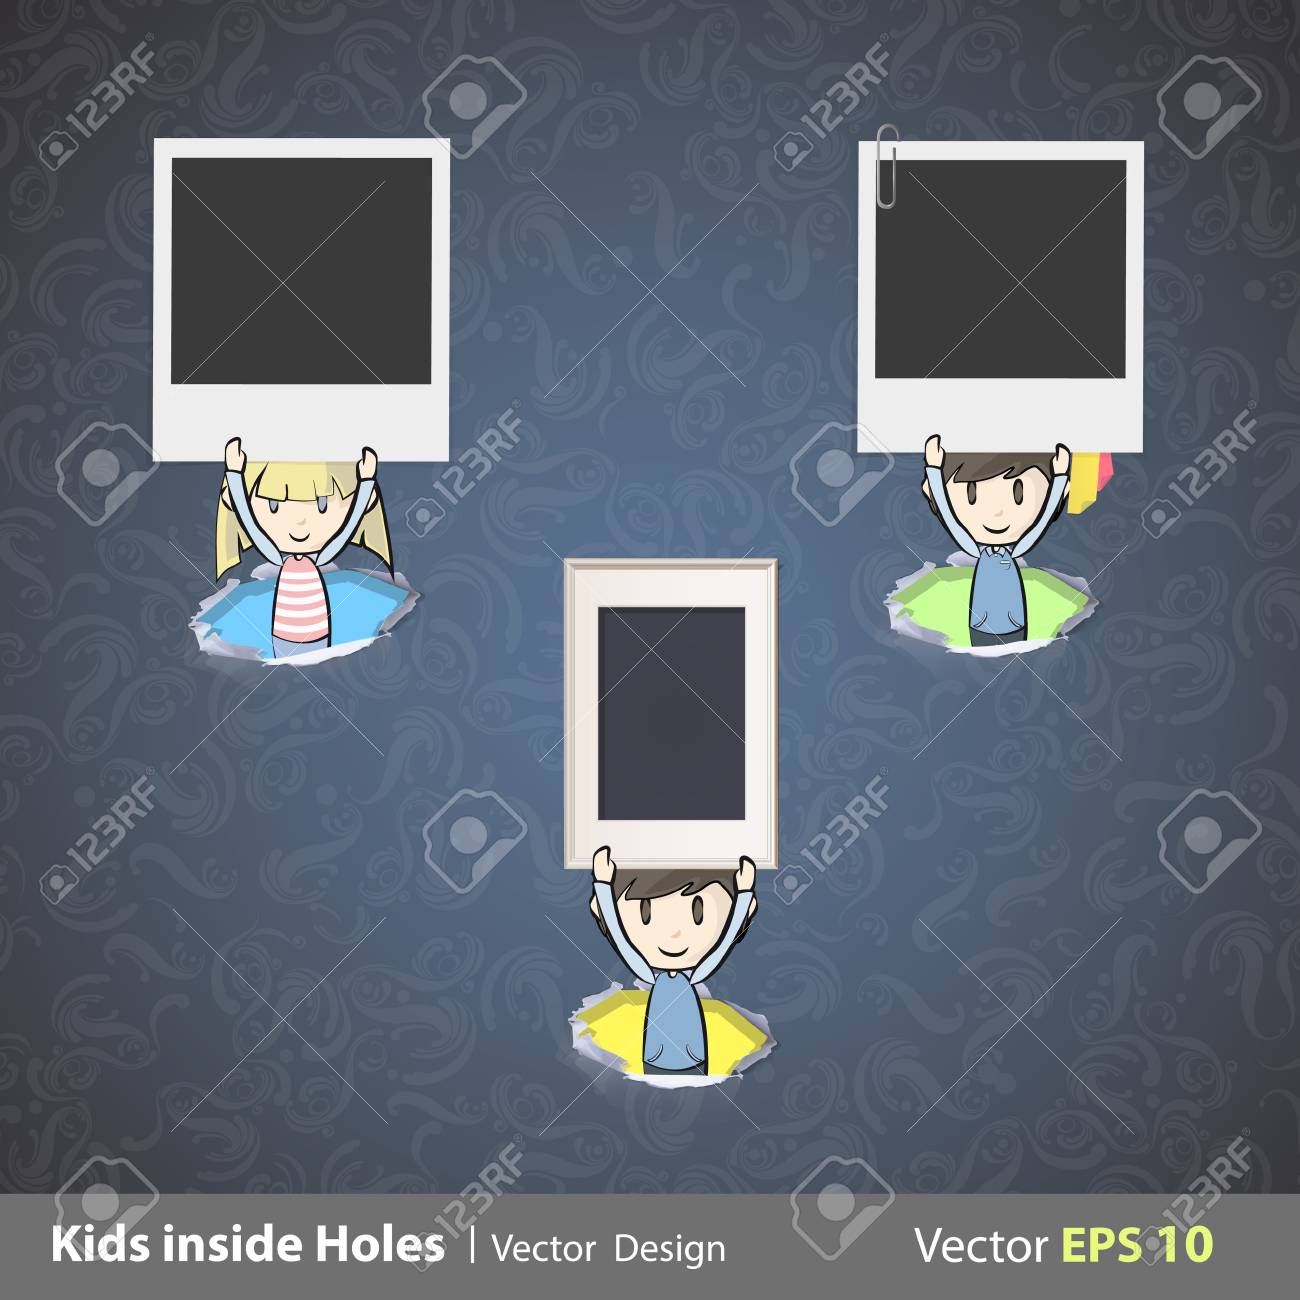 Kids holding photos inside hole papers illustration Stock Vector - 22411219